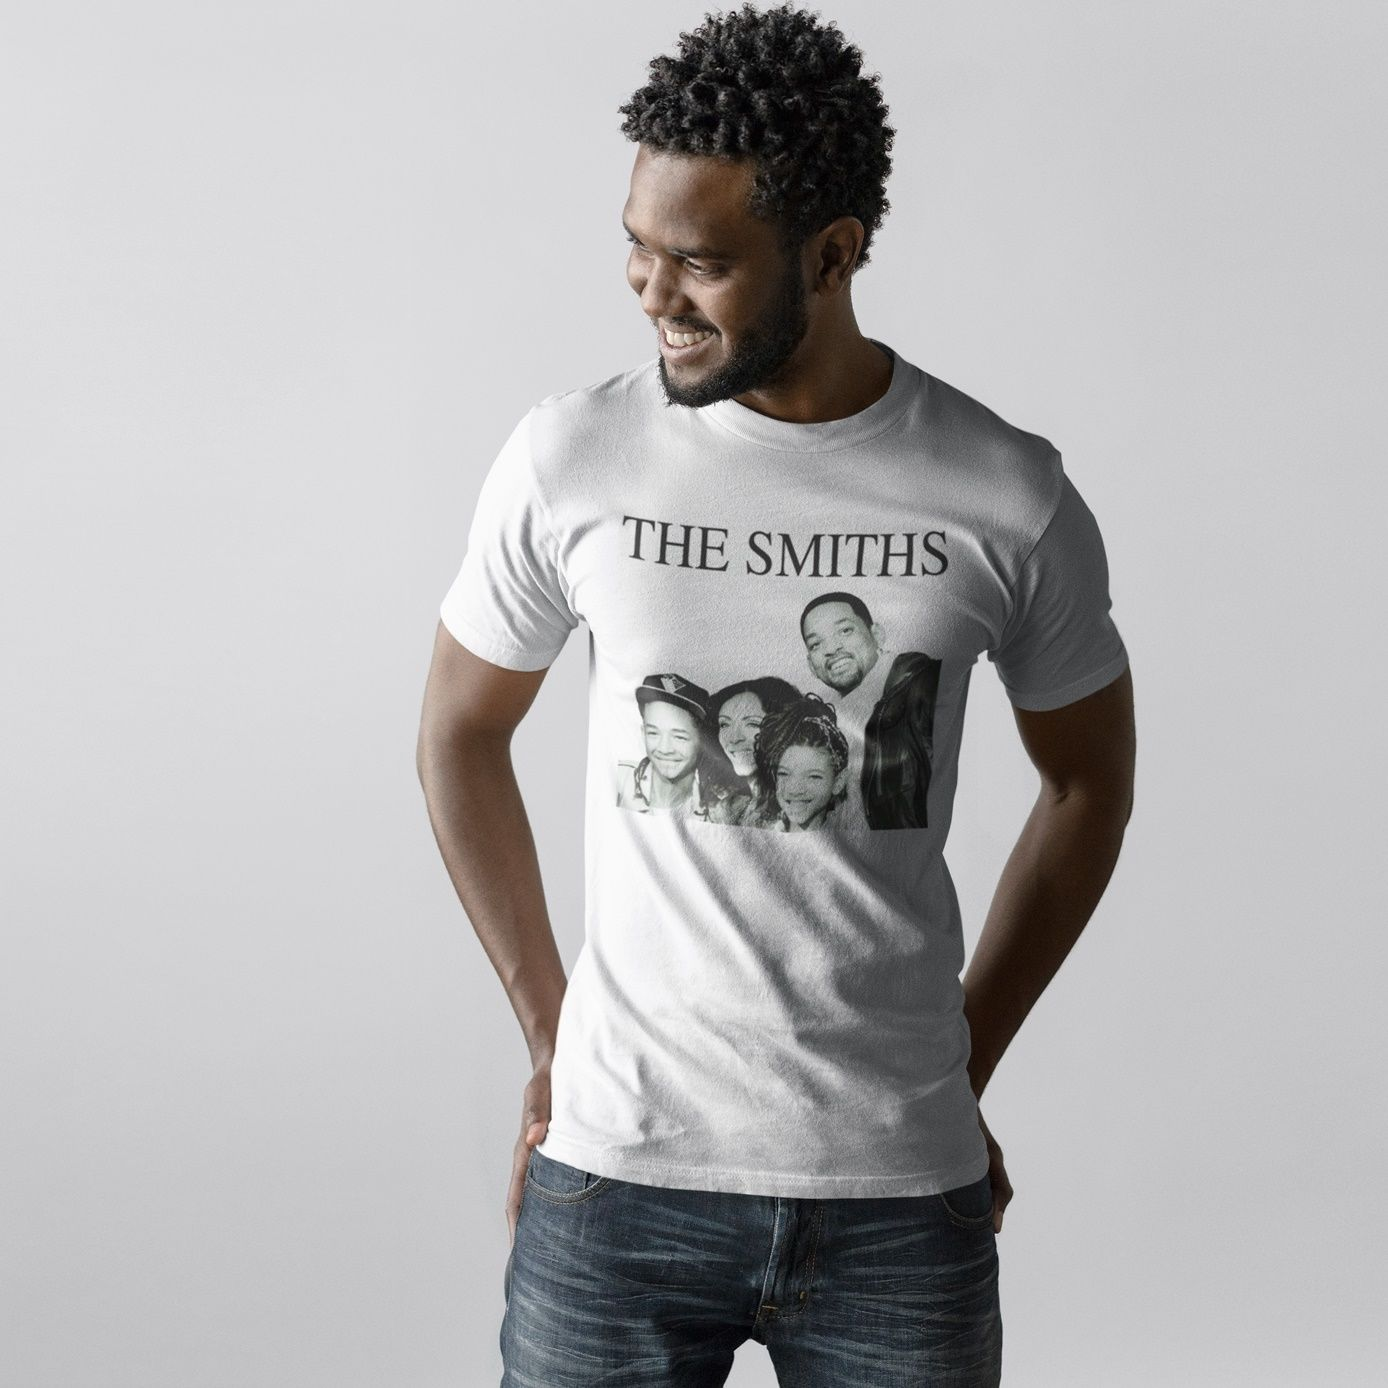 The Smiths T Shirt Anti Hipster Tee Will Family Funny Parody Joke Guitar S - XXL ...